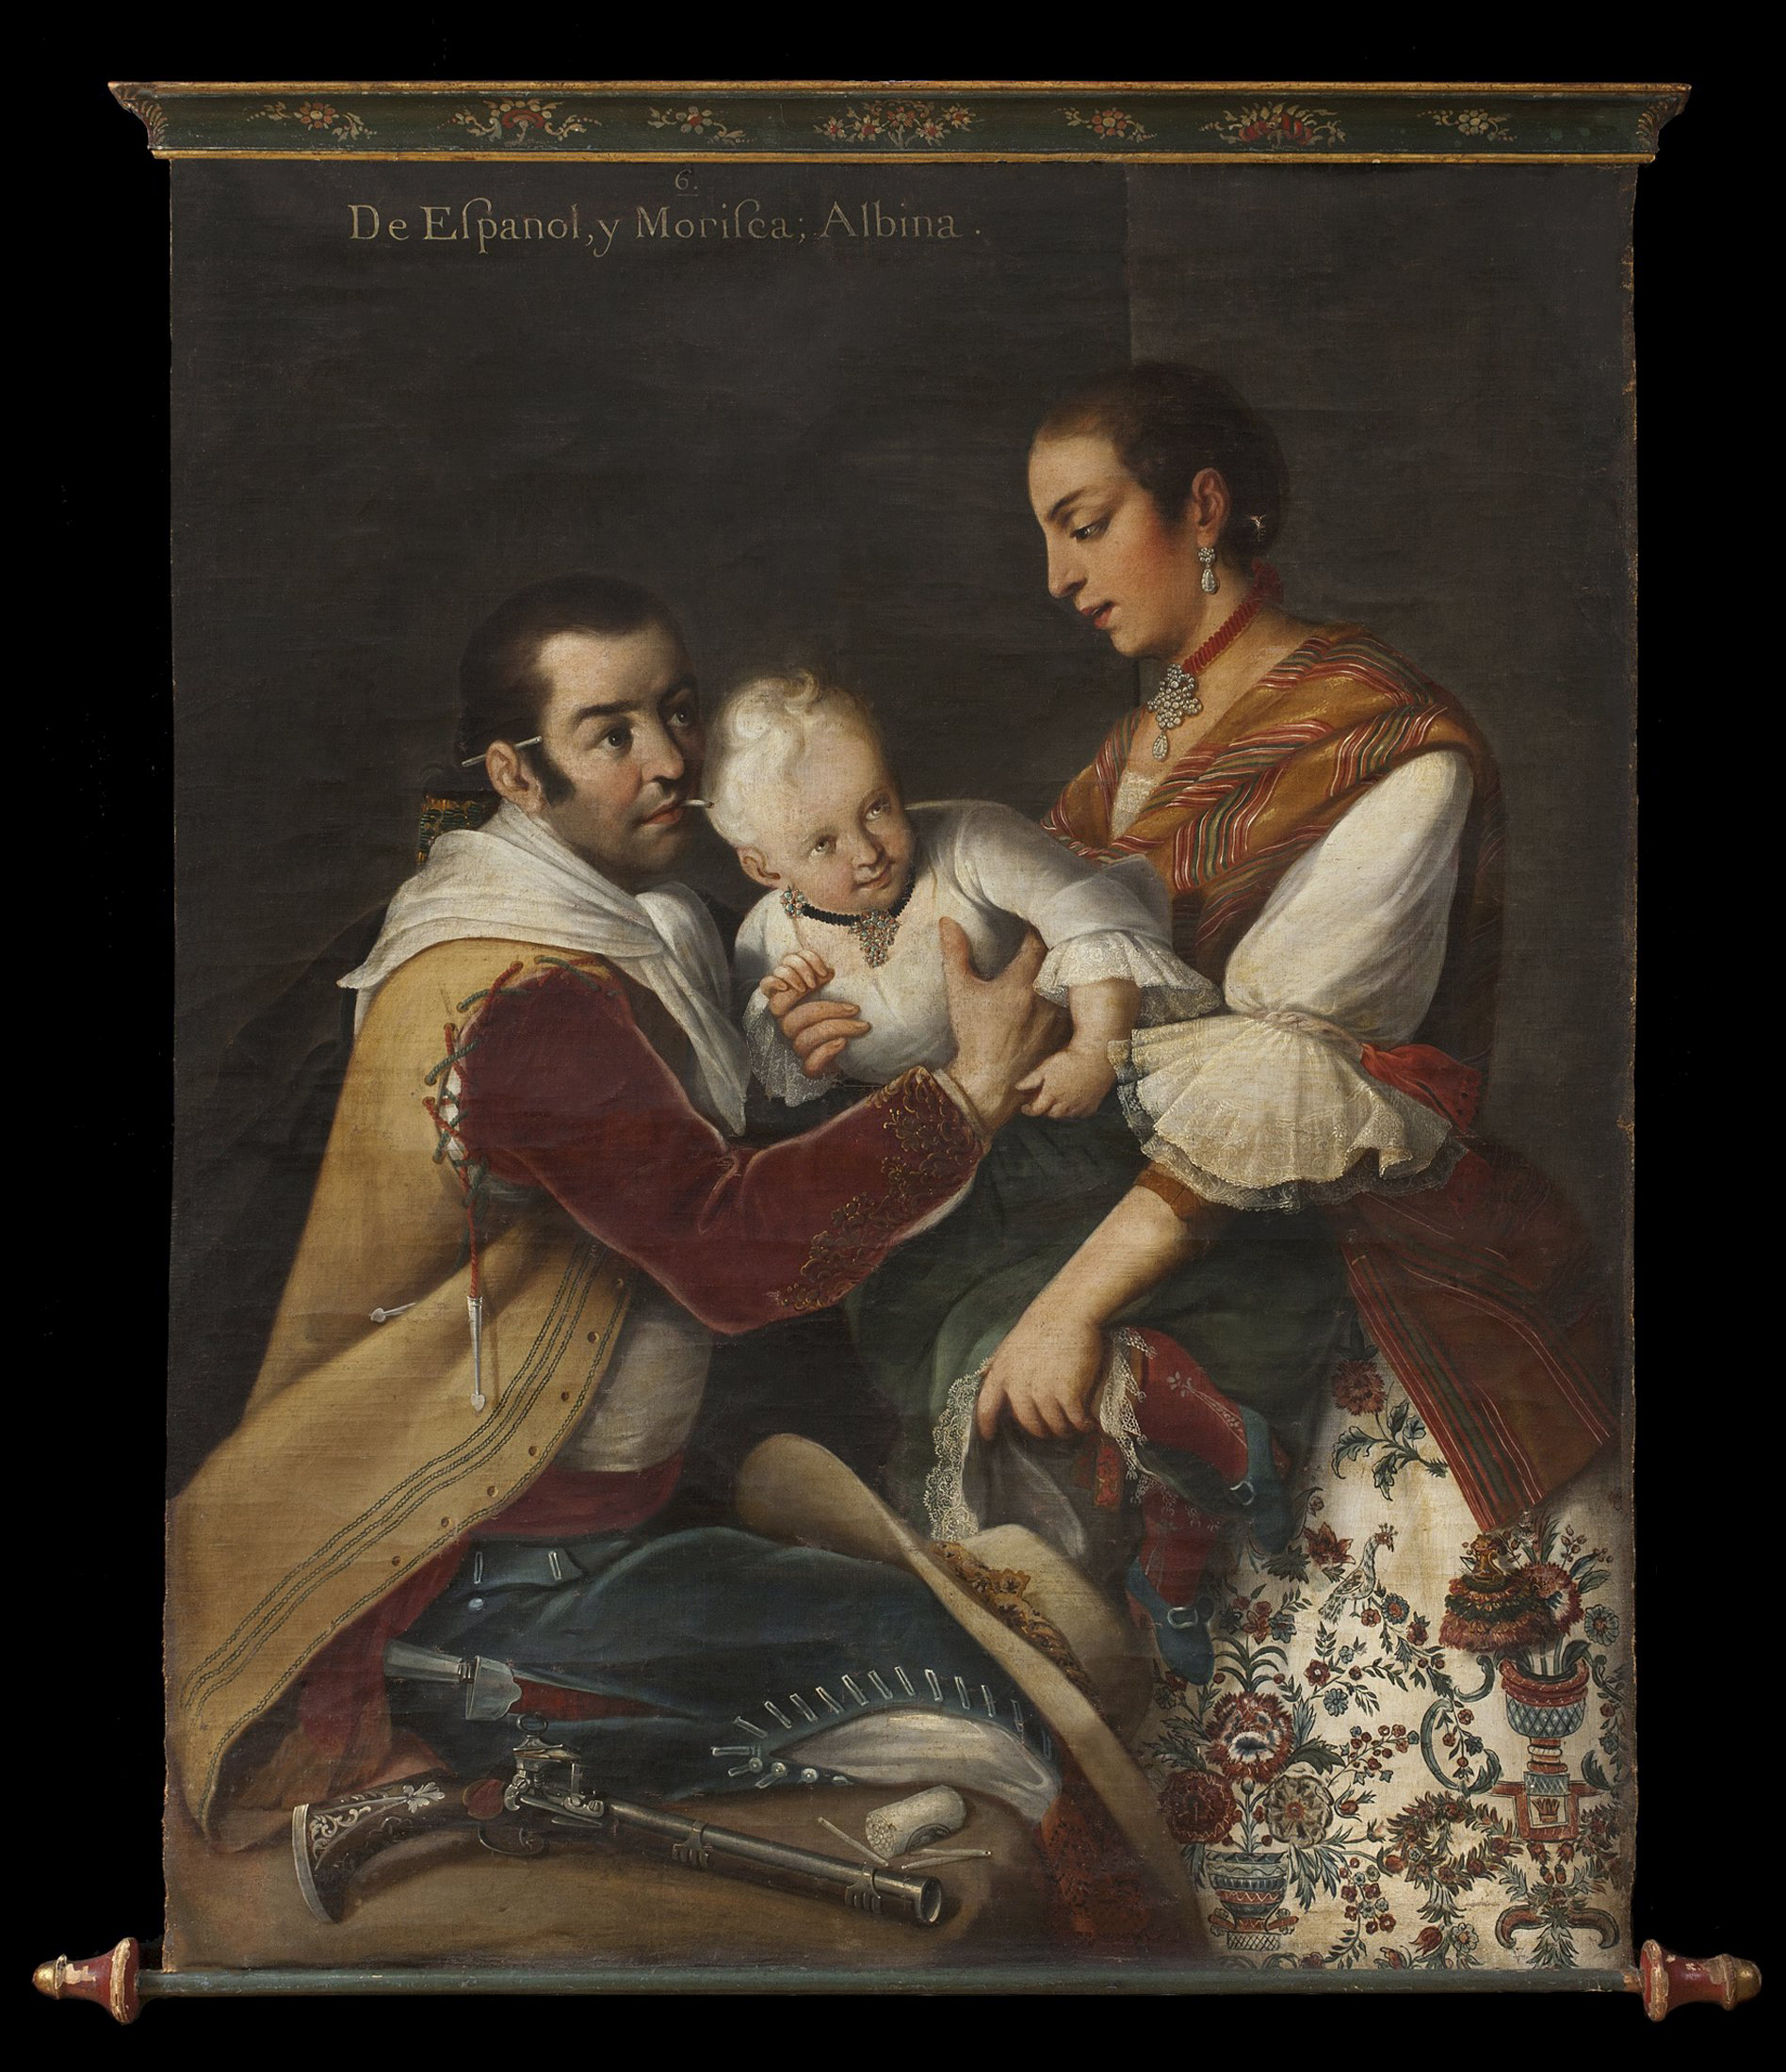 """Handout photo of The Miguel Cabrera painting, """"From Spanaird and Morisca, Albino"""""""